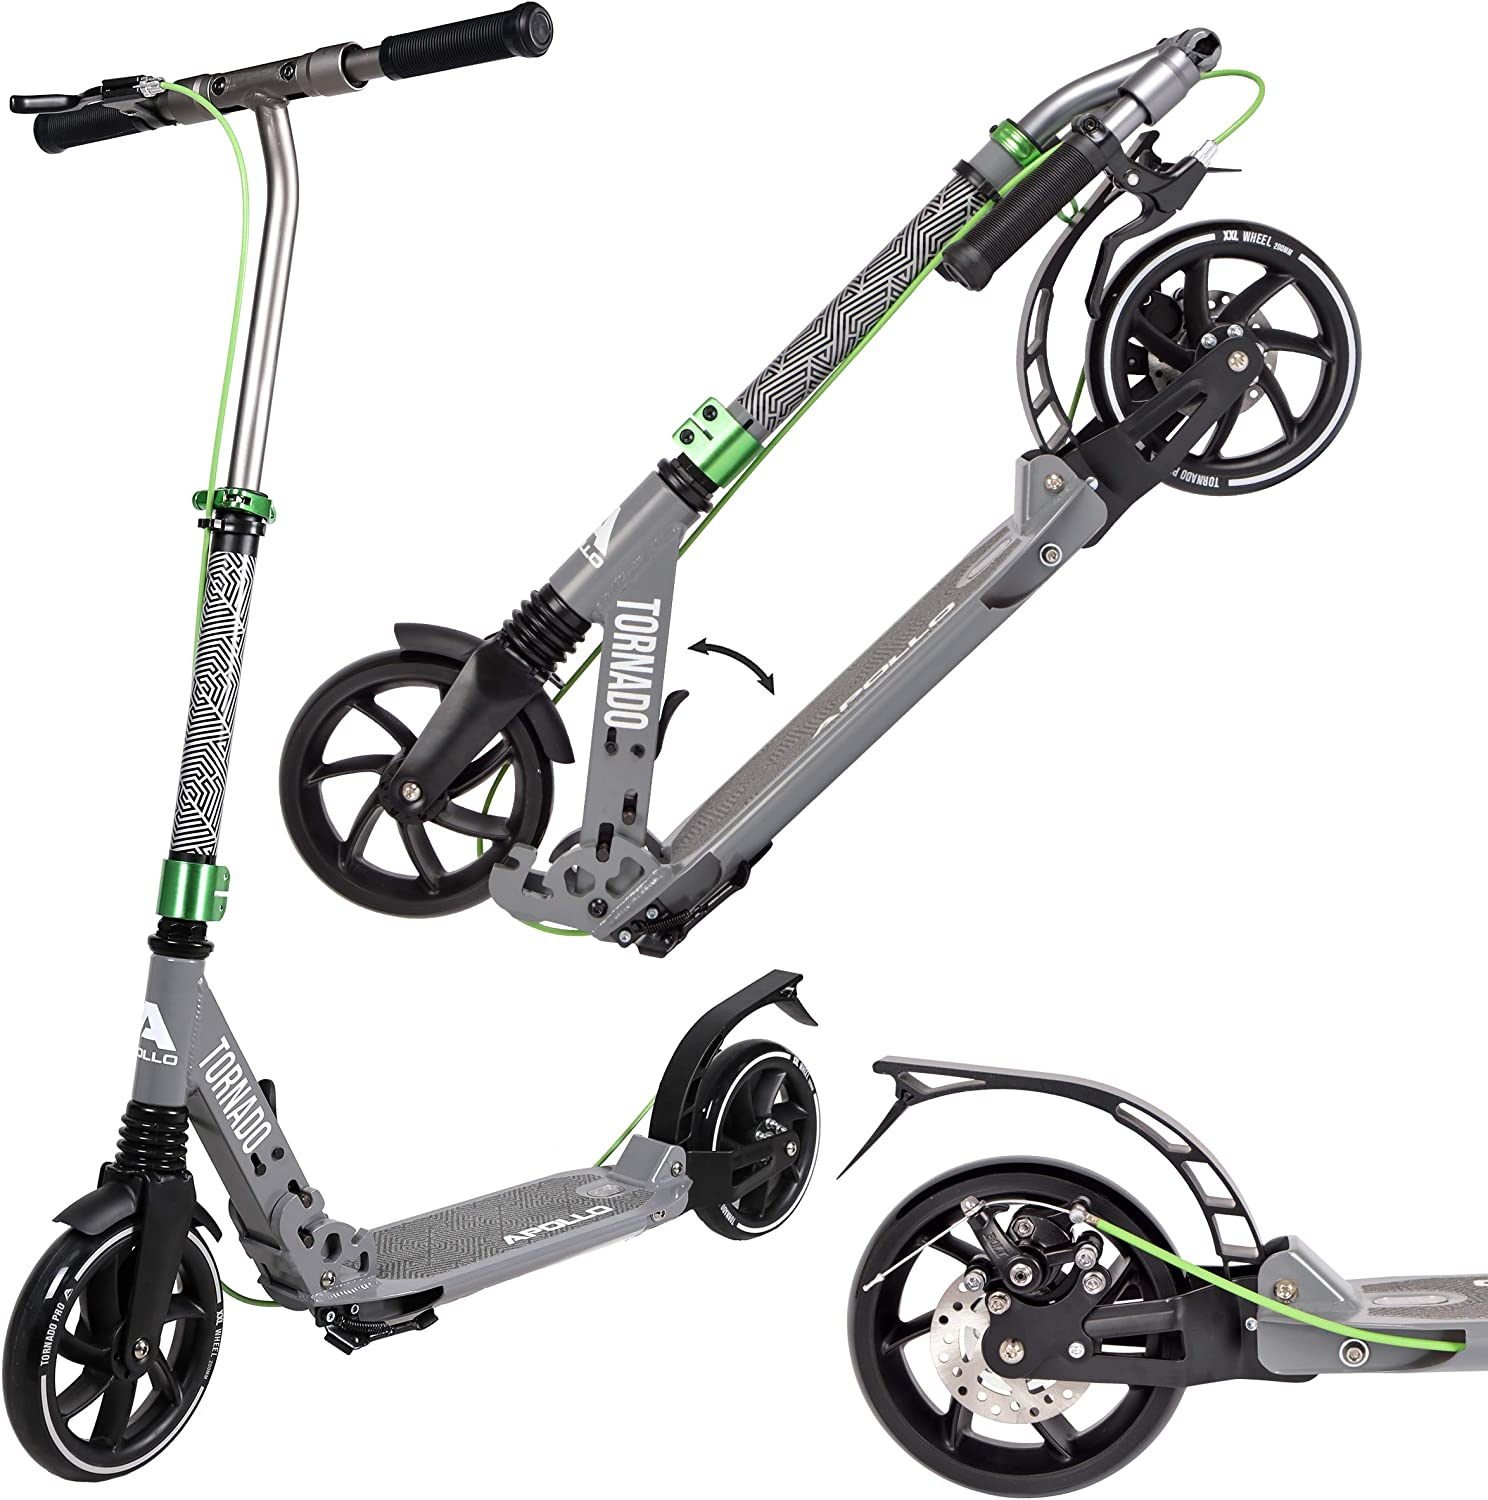 Apollo High End Scooter Tornado City Scooter With Brake And Suspension City Scooter Foldable And Height Adjustable Kick Scooter For Adults And Children Grey Sport Freizeit